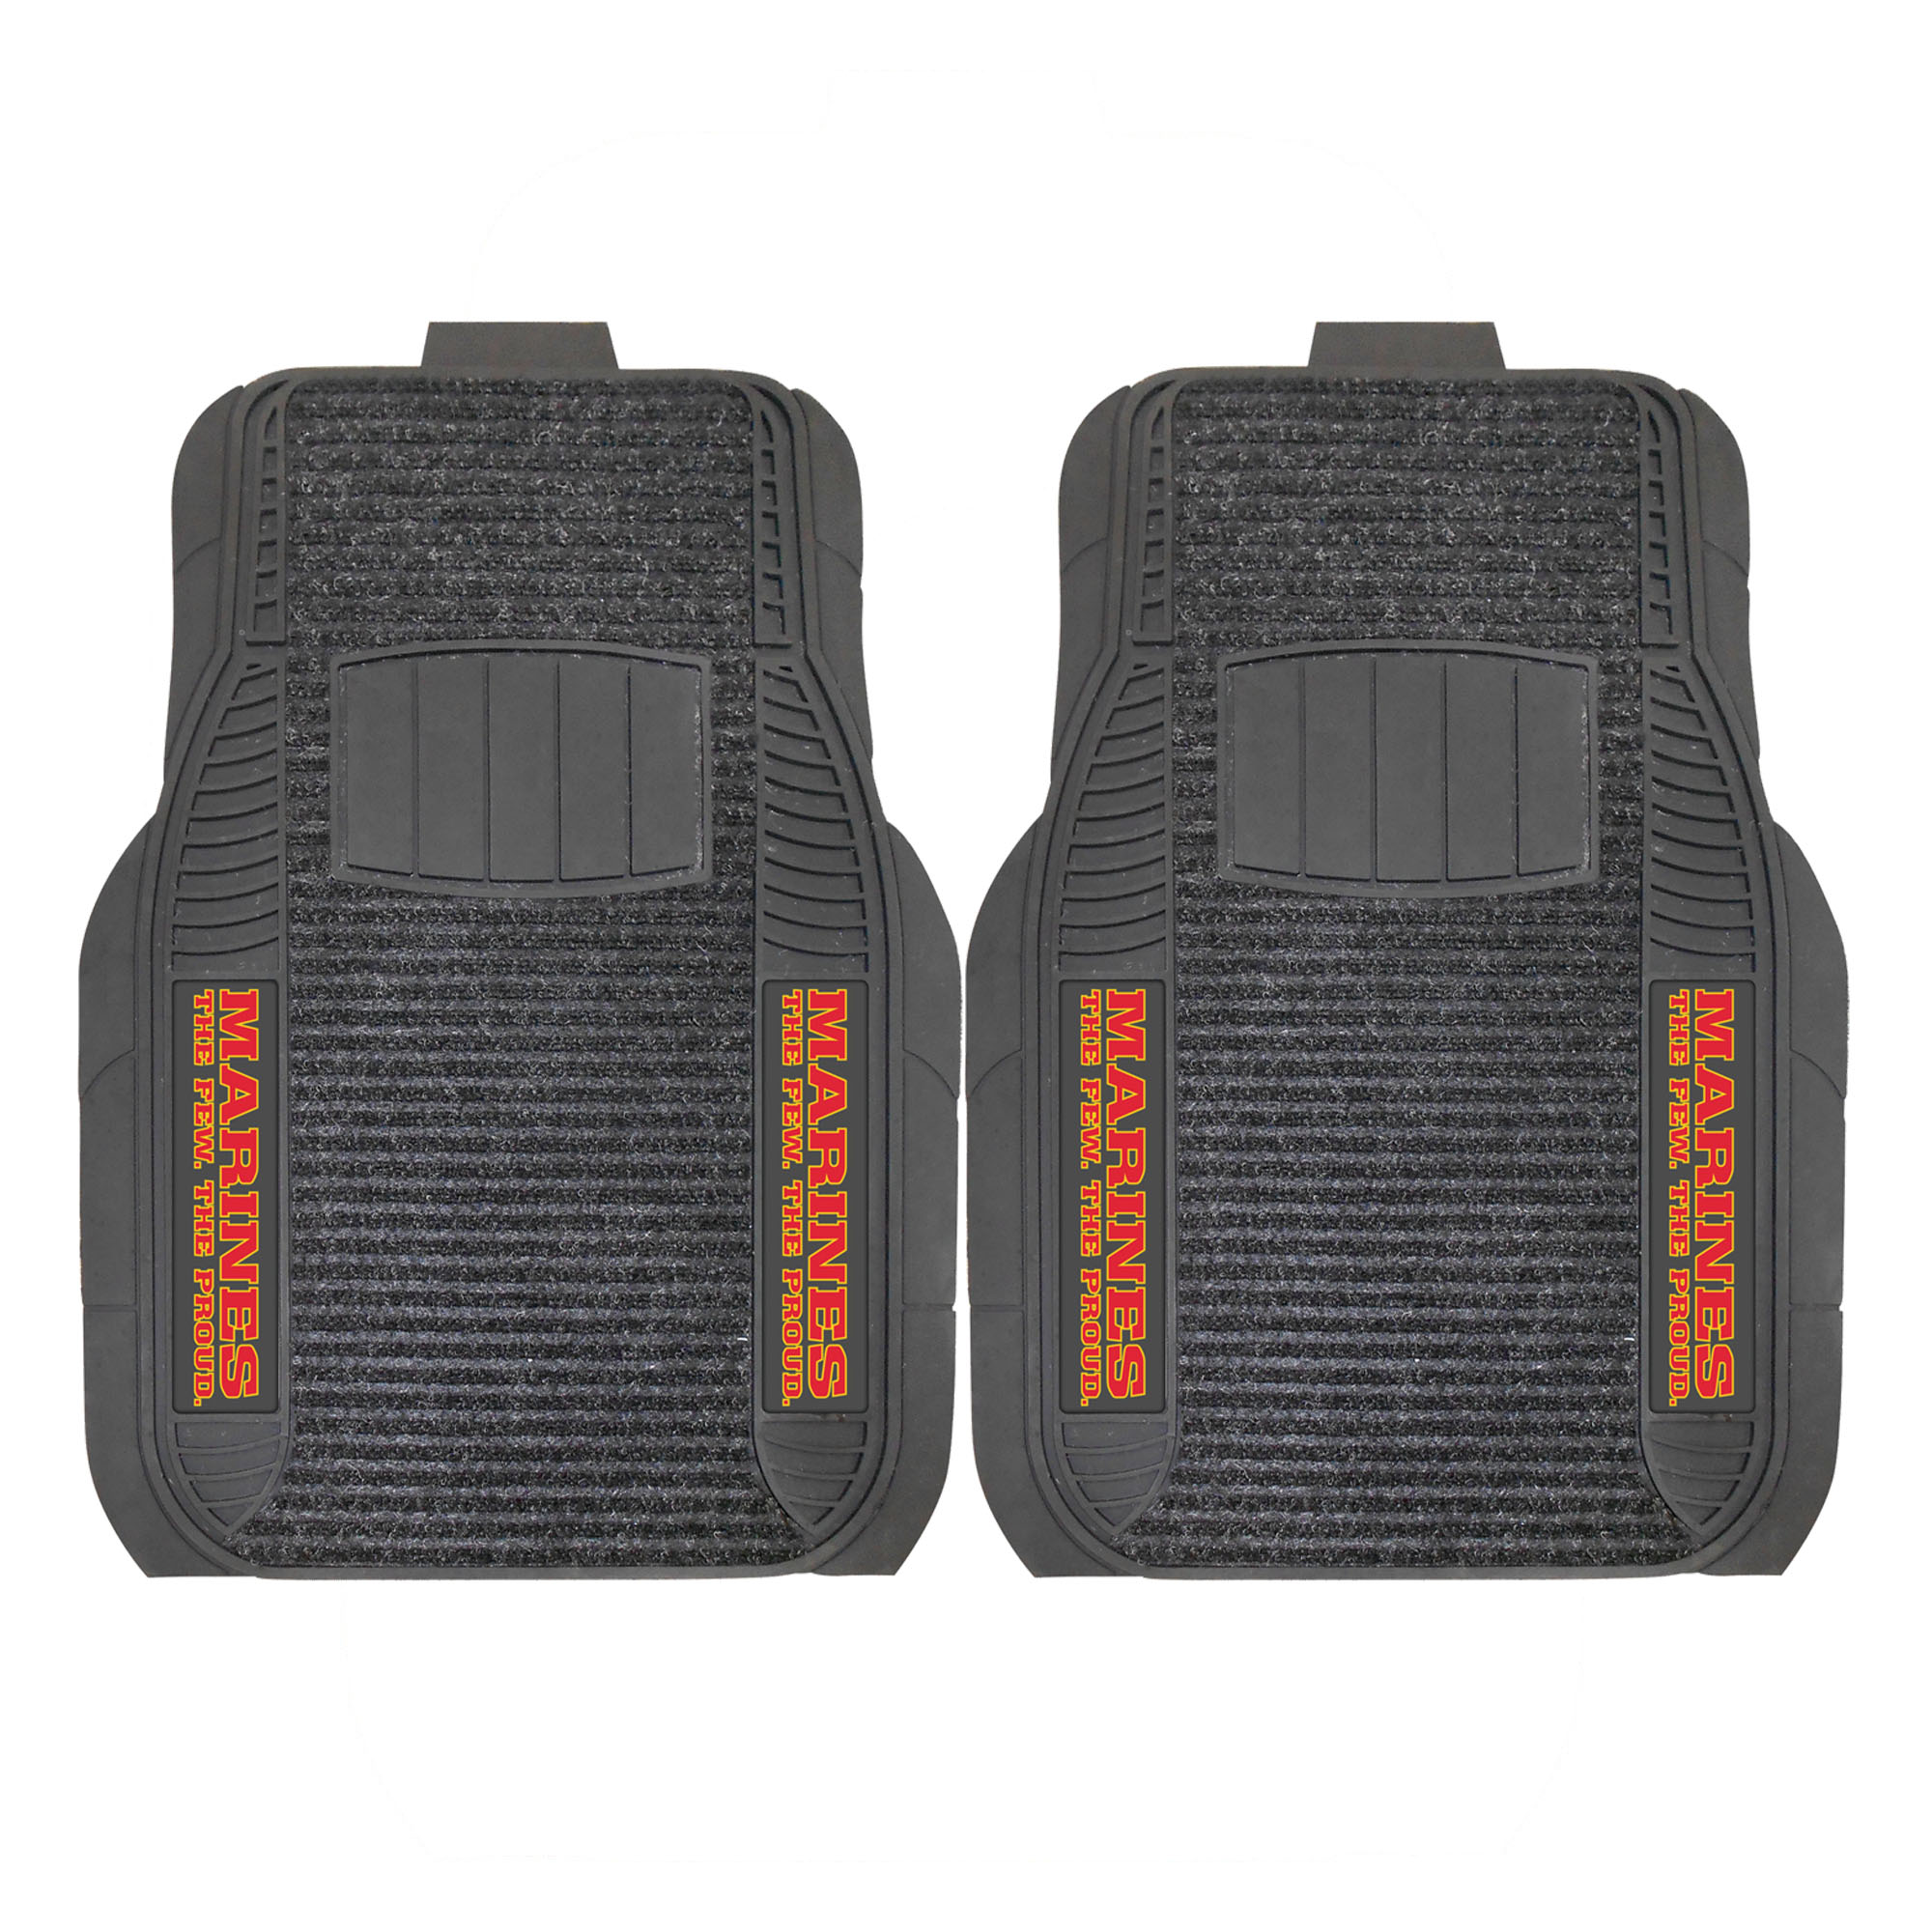 U.S. Marines 2-PC Deluxe Front Car Mat Set, Universal Size